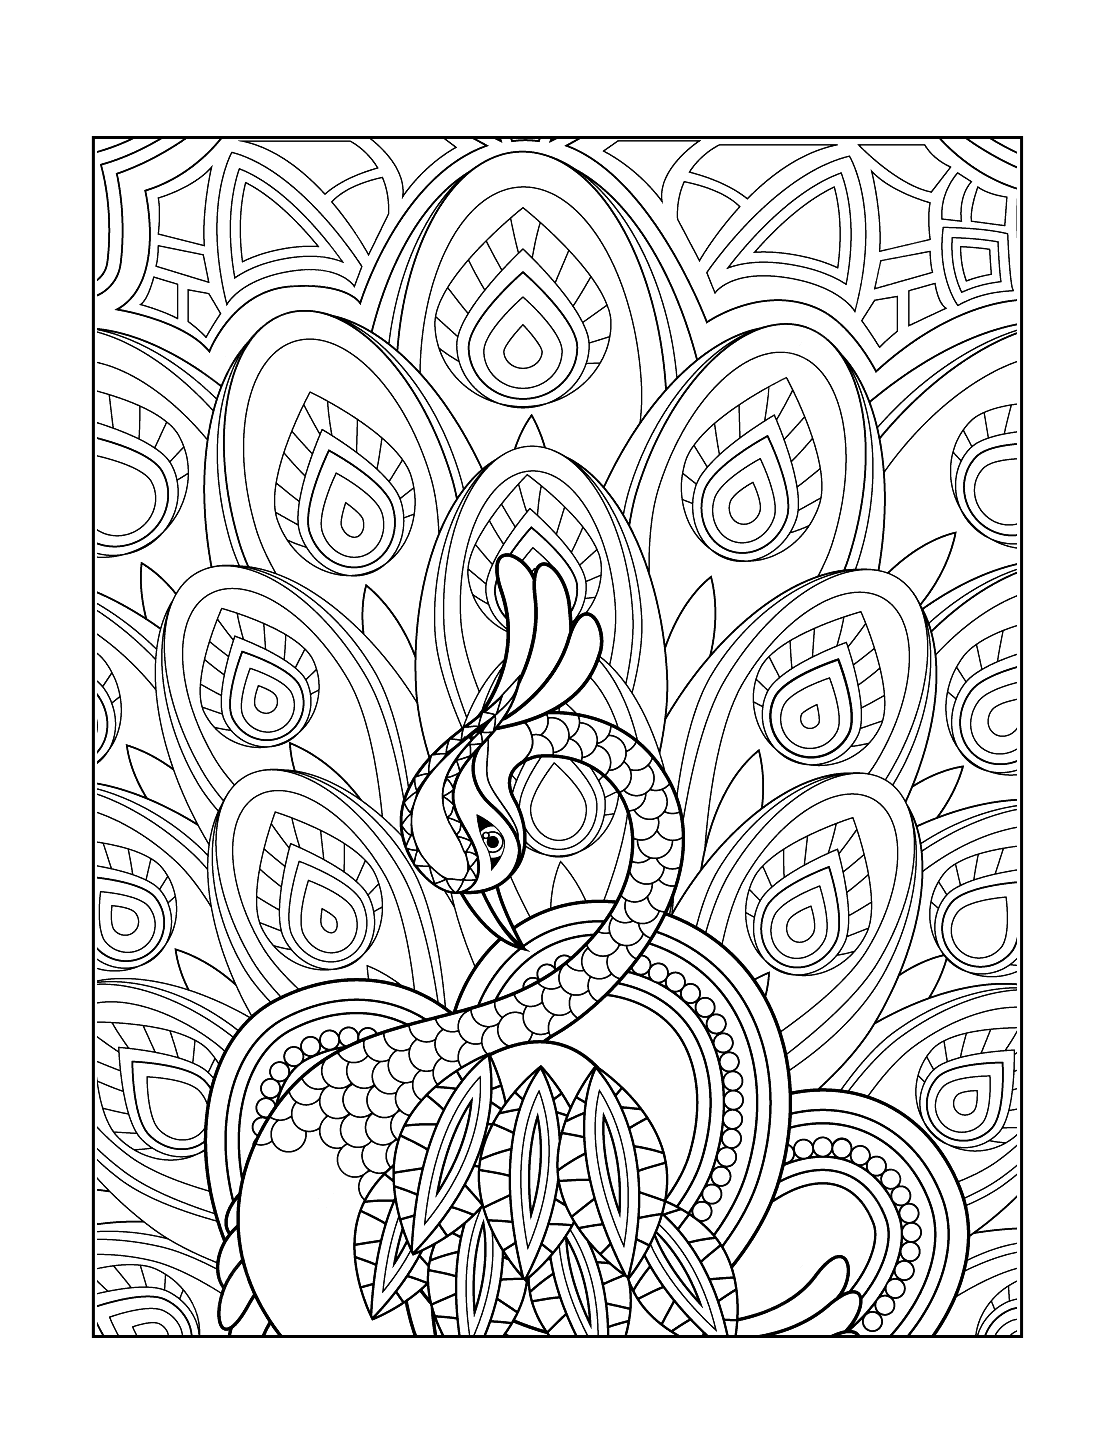 Diwali Peacock Coloring Pages